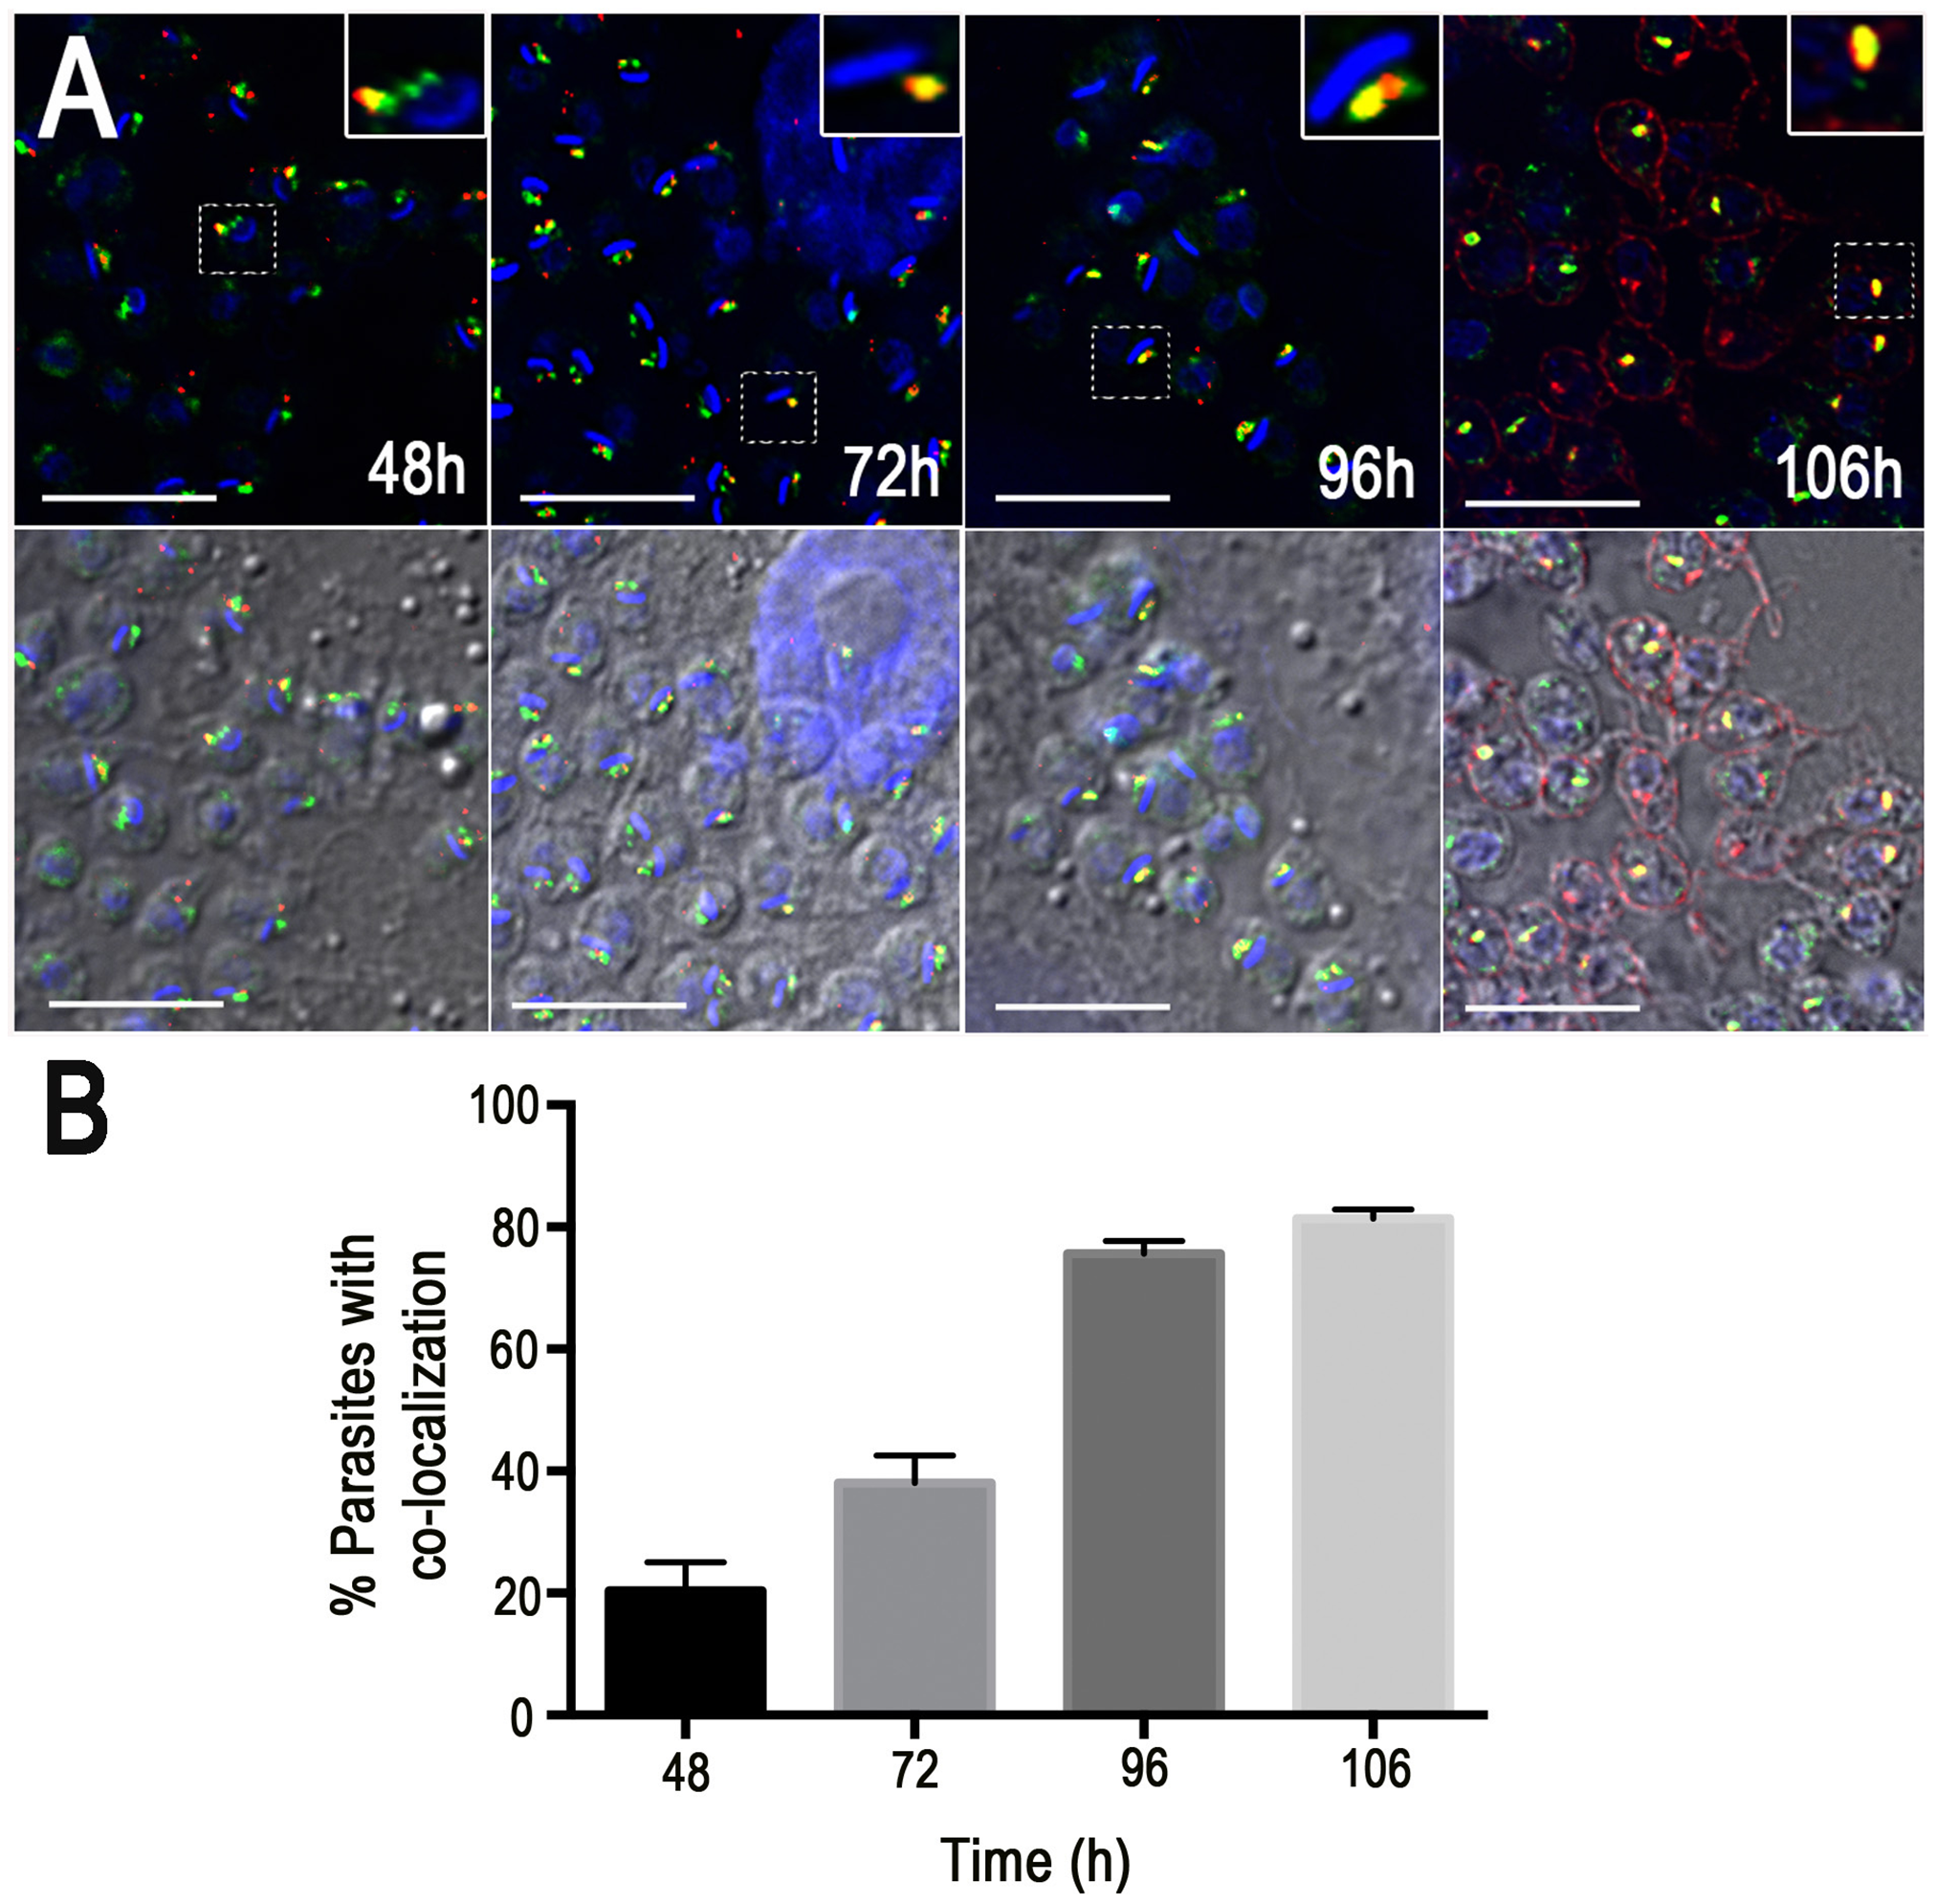 Co-localization of GFP-TcRab11 and TcTS during amastigote differentiation in human foreskin fibroblasts.